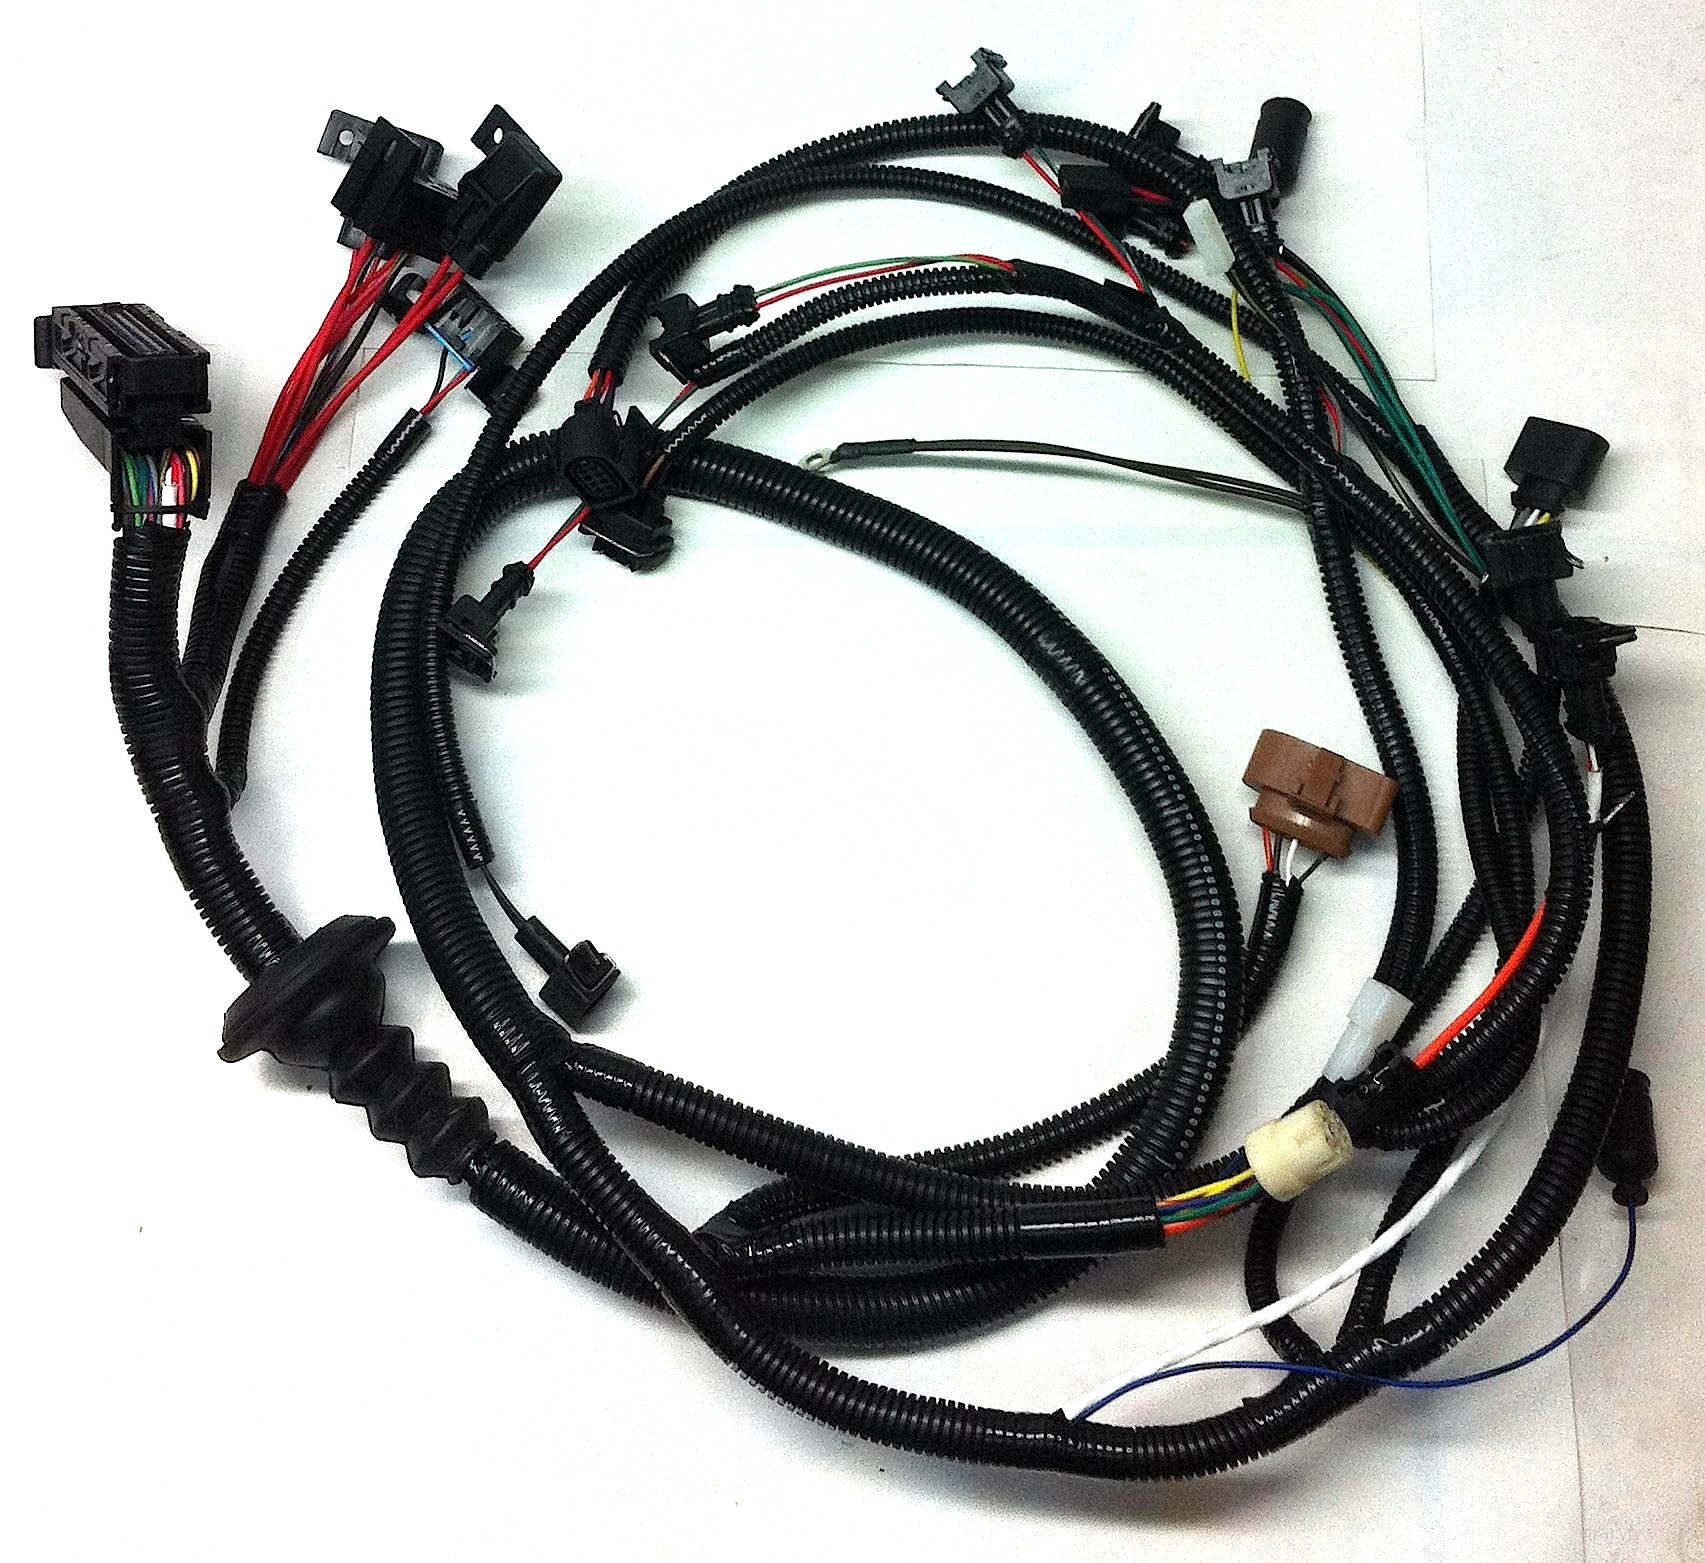 Wiring_Harness_2LR 2lr tiico conversion wiring harness foreign auto & supply, inc wiring harness engine at mifinder.co